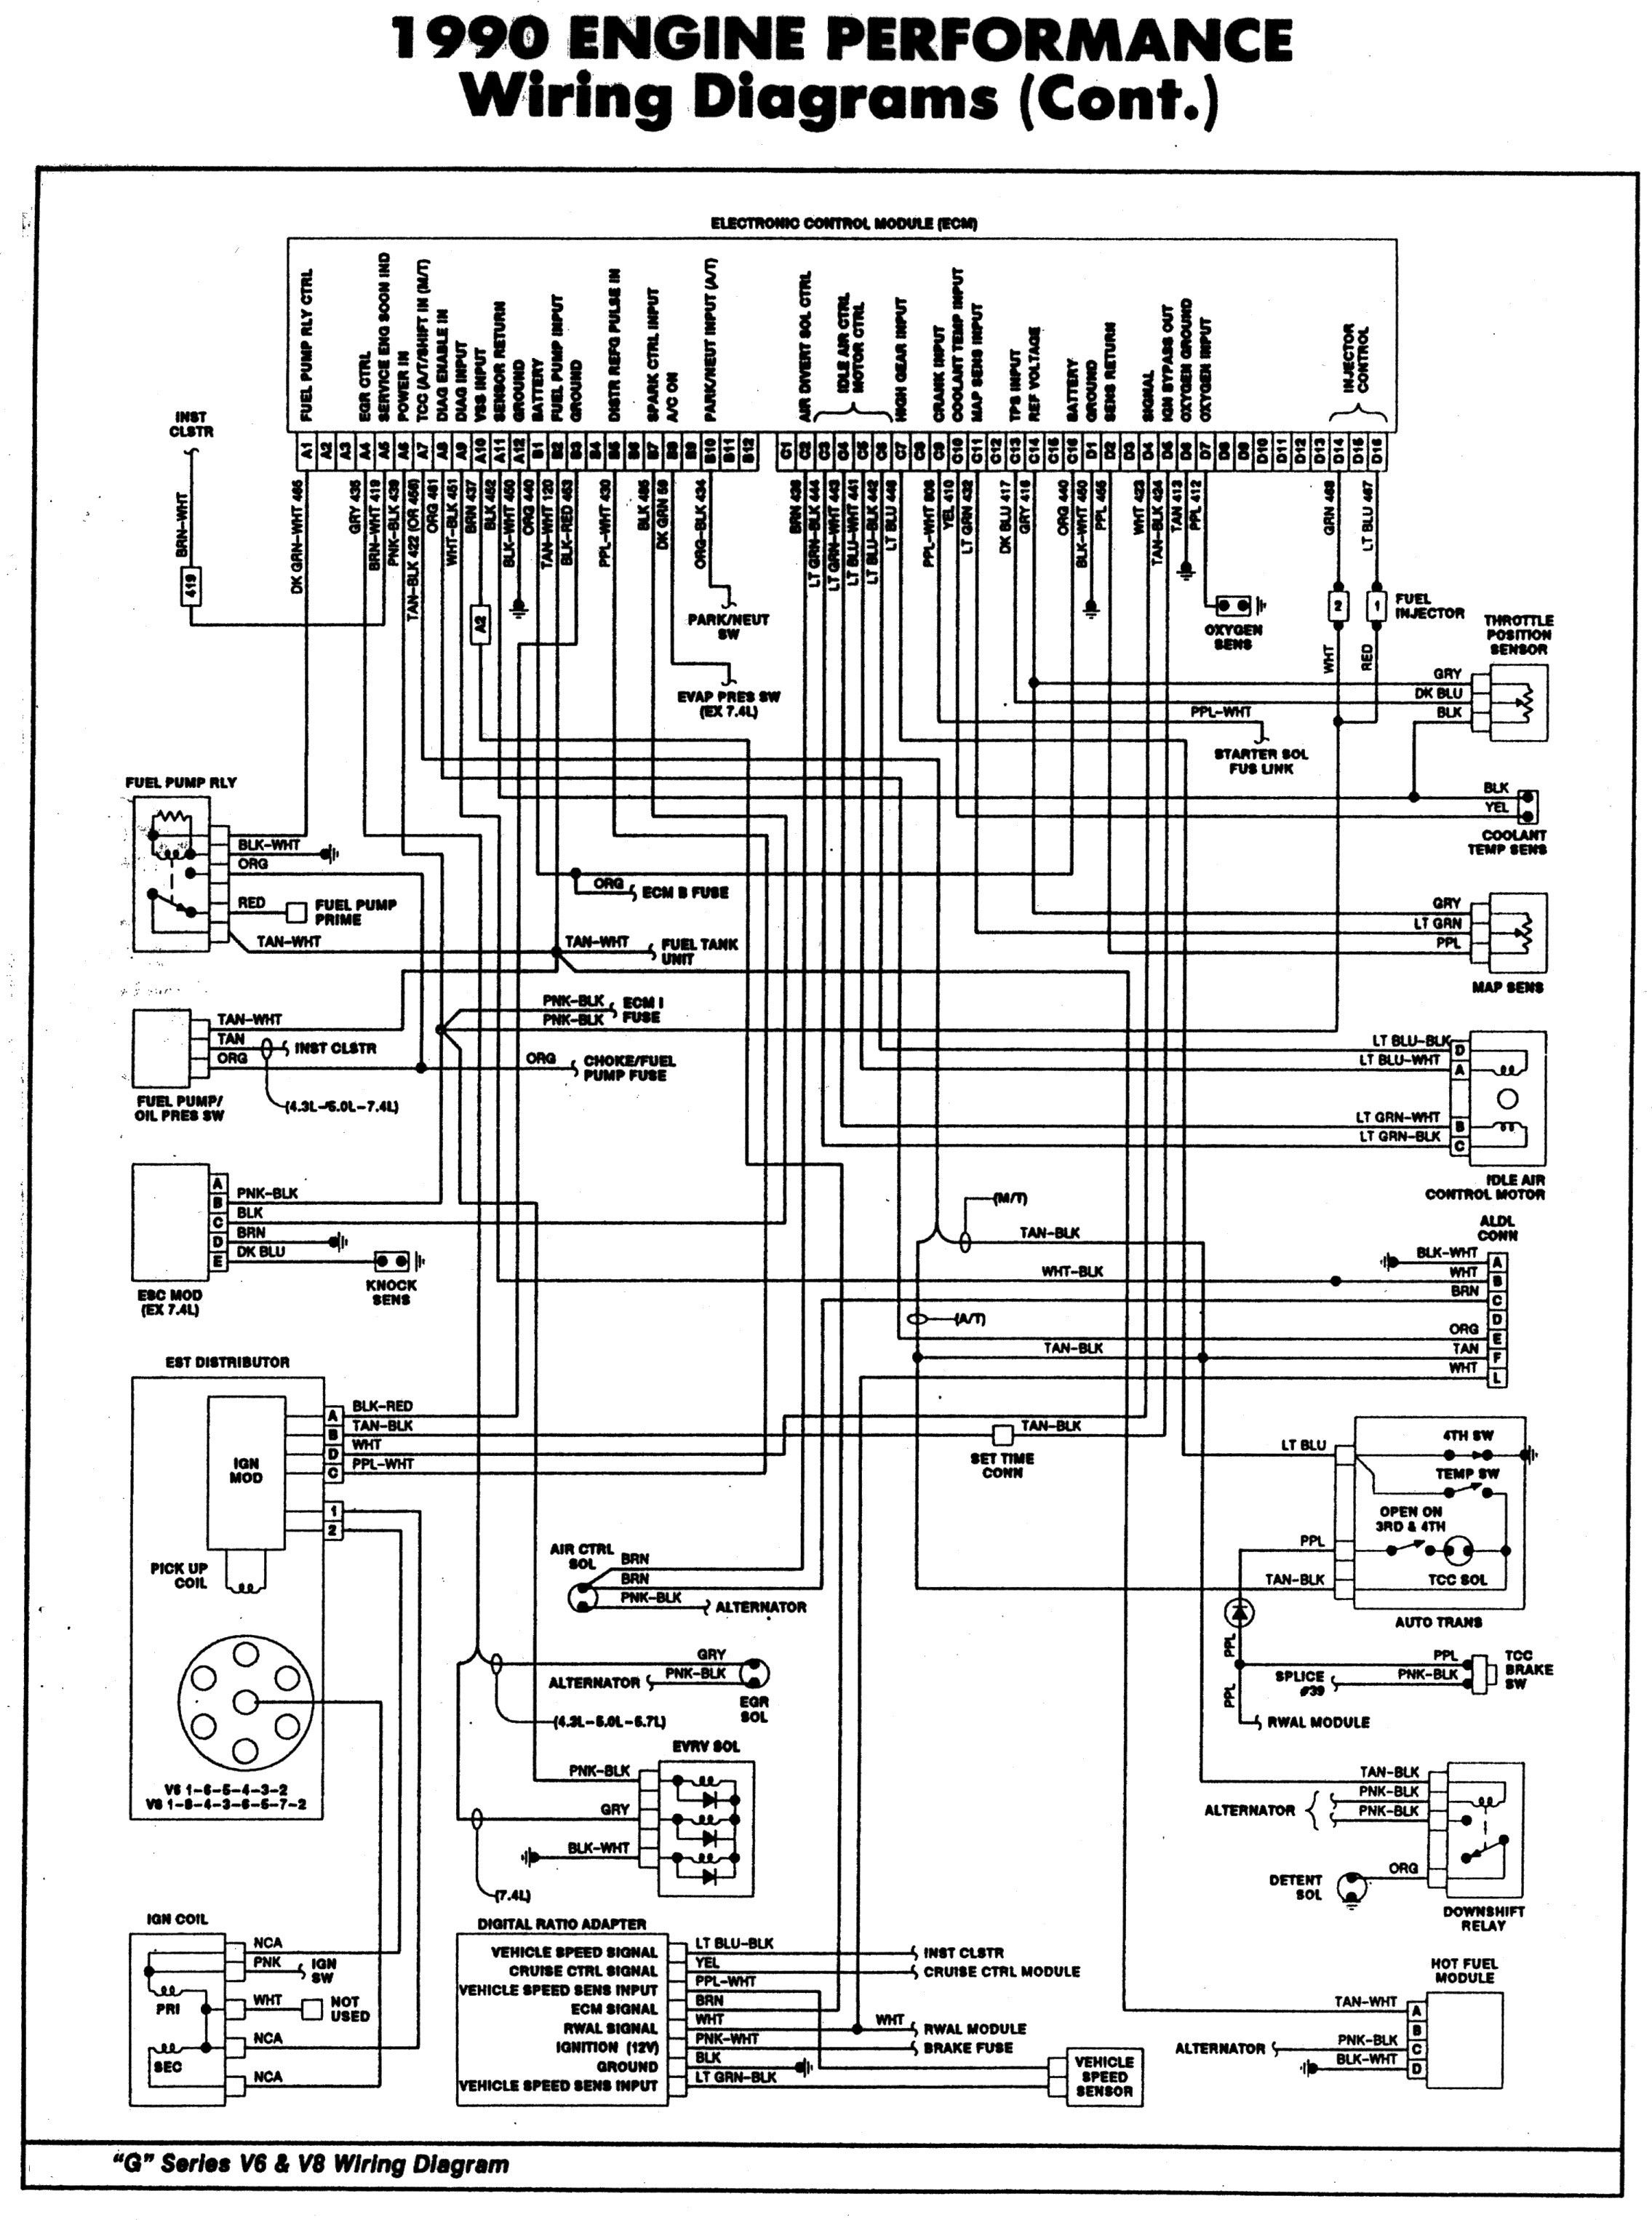 hight resolution of 94 chevy k1500 wiring diagram wiring diagram forward 1990 chevy k1500 wiring diagram 94 chevy wiring